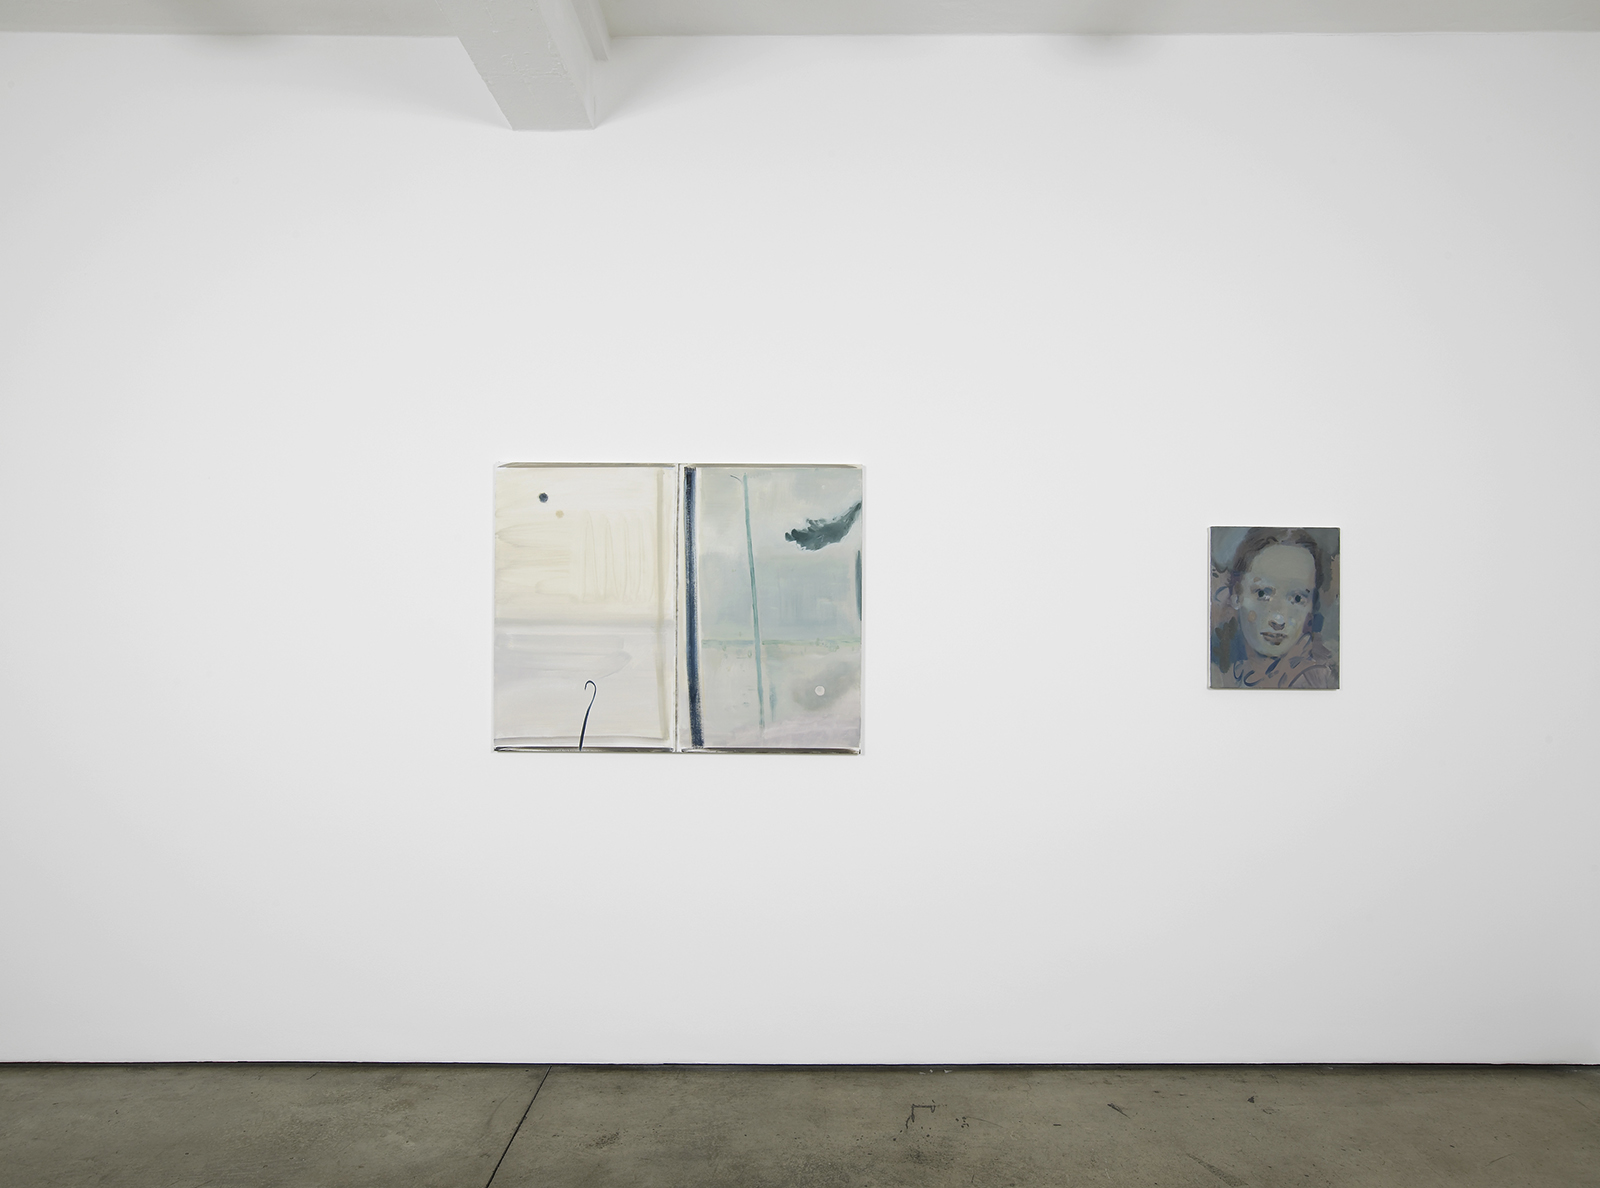 10 - Kaye Donachie at Maureen Paley - 4.02.2014